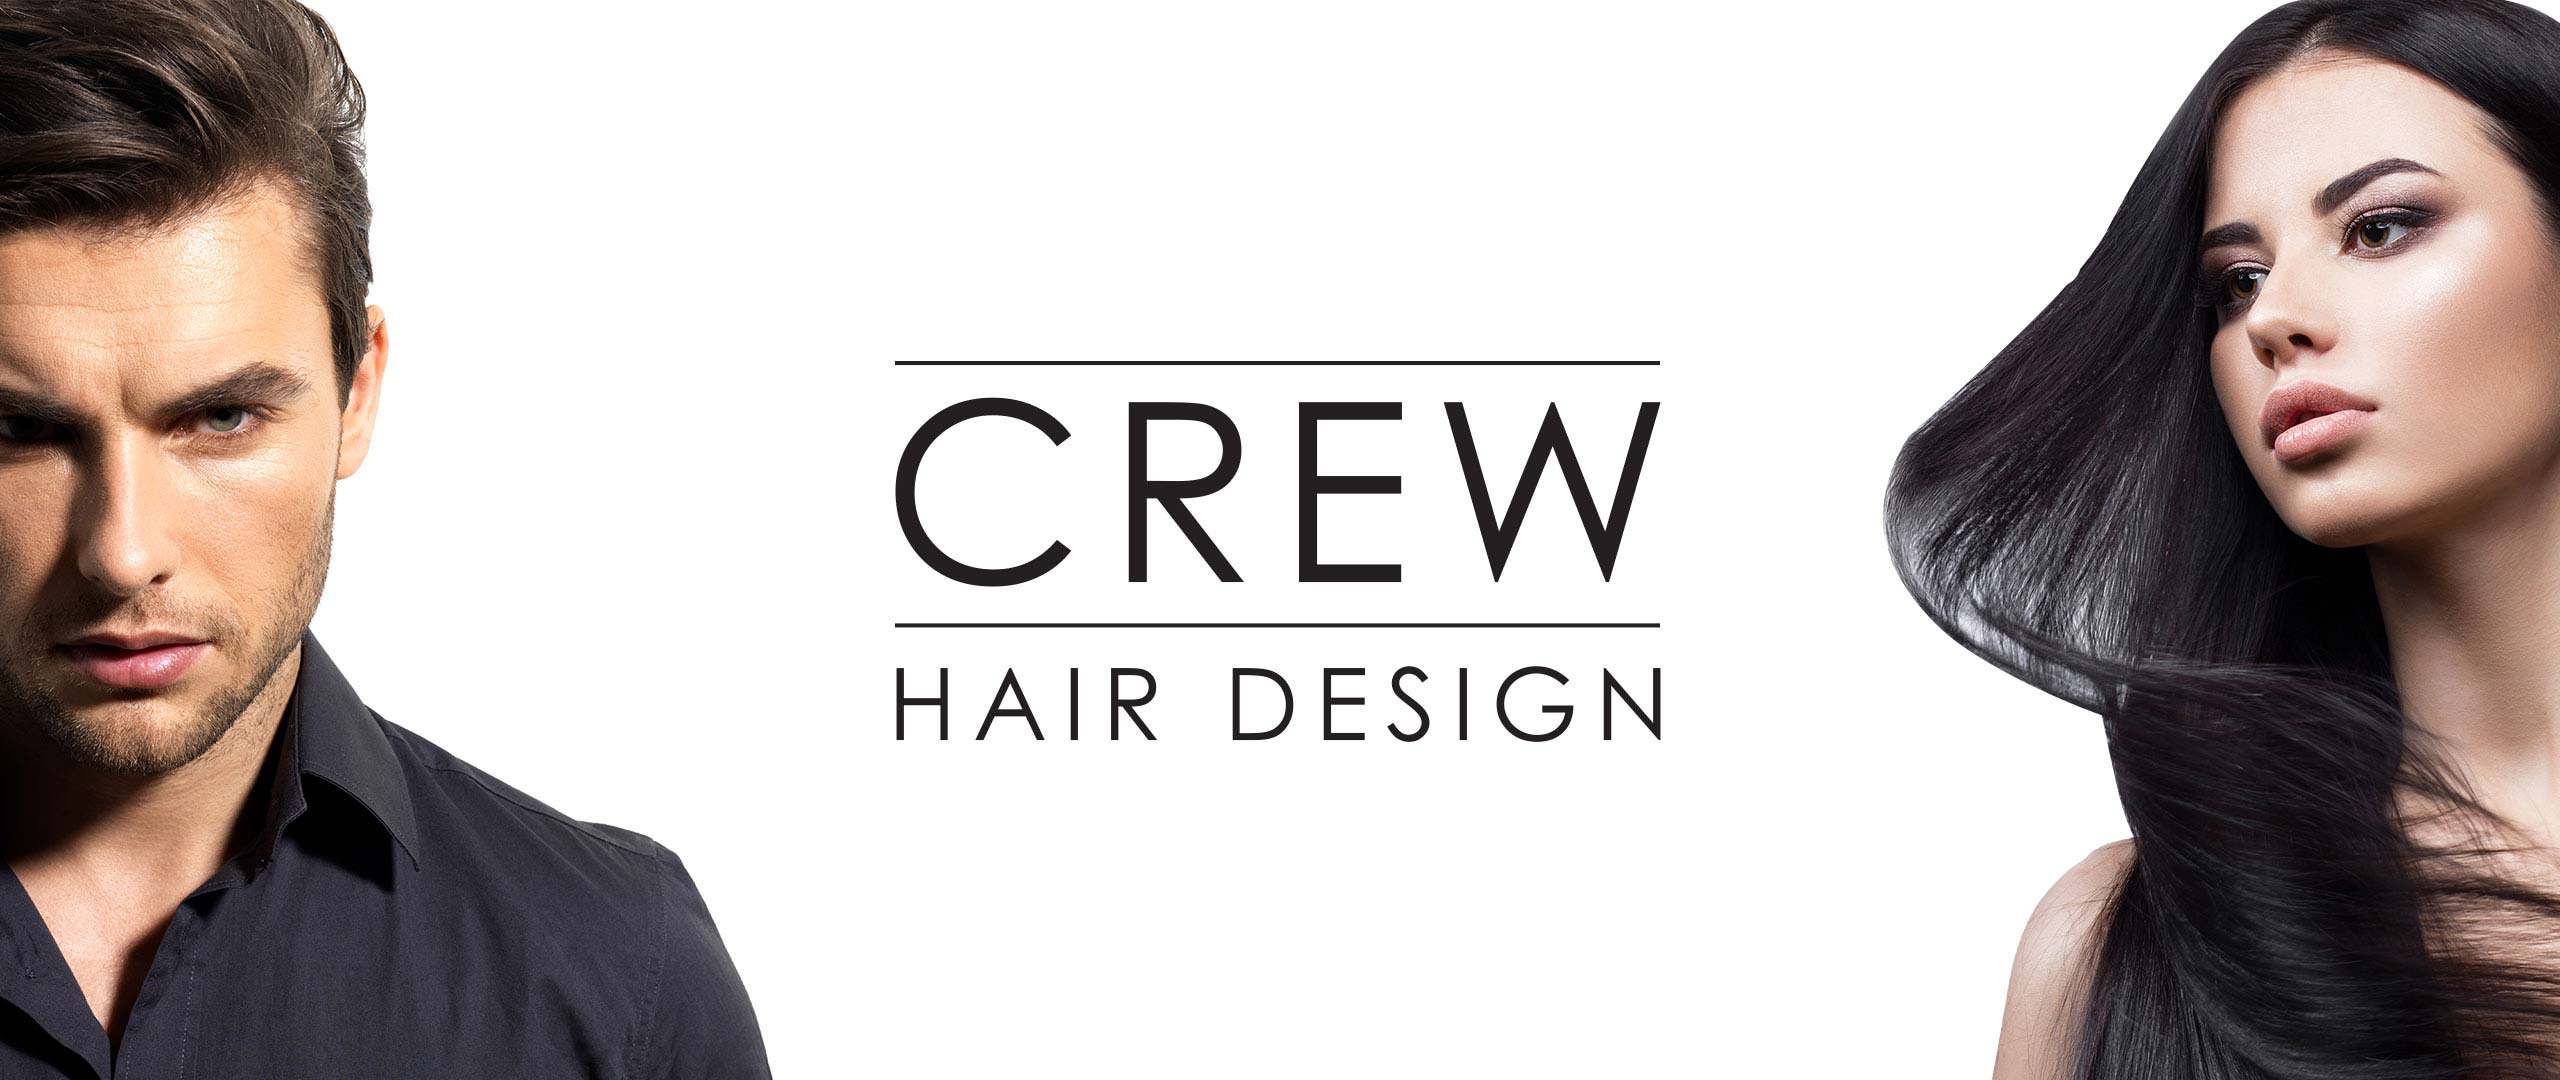 Crew Hair Sutton Coldfield